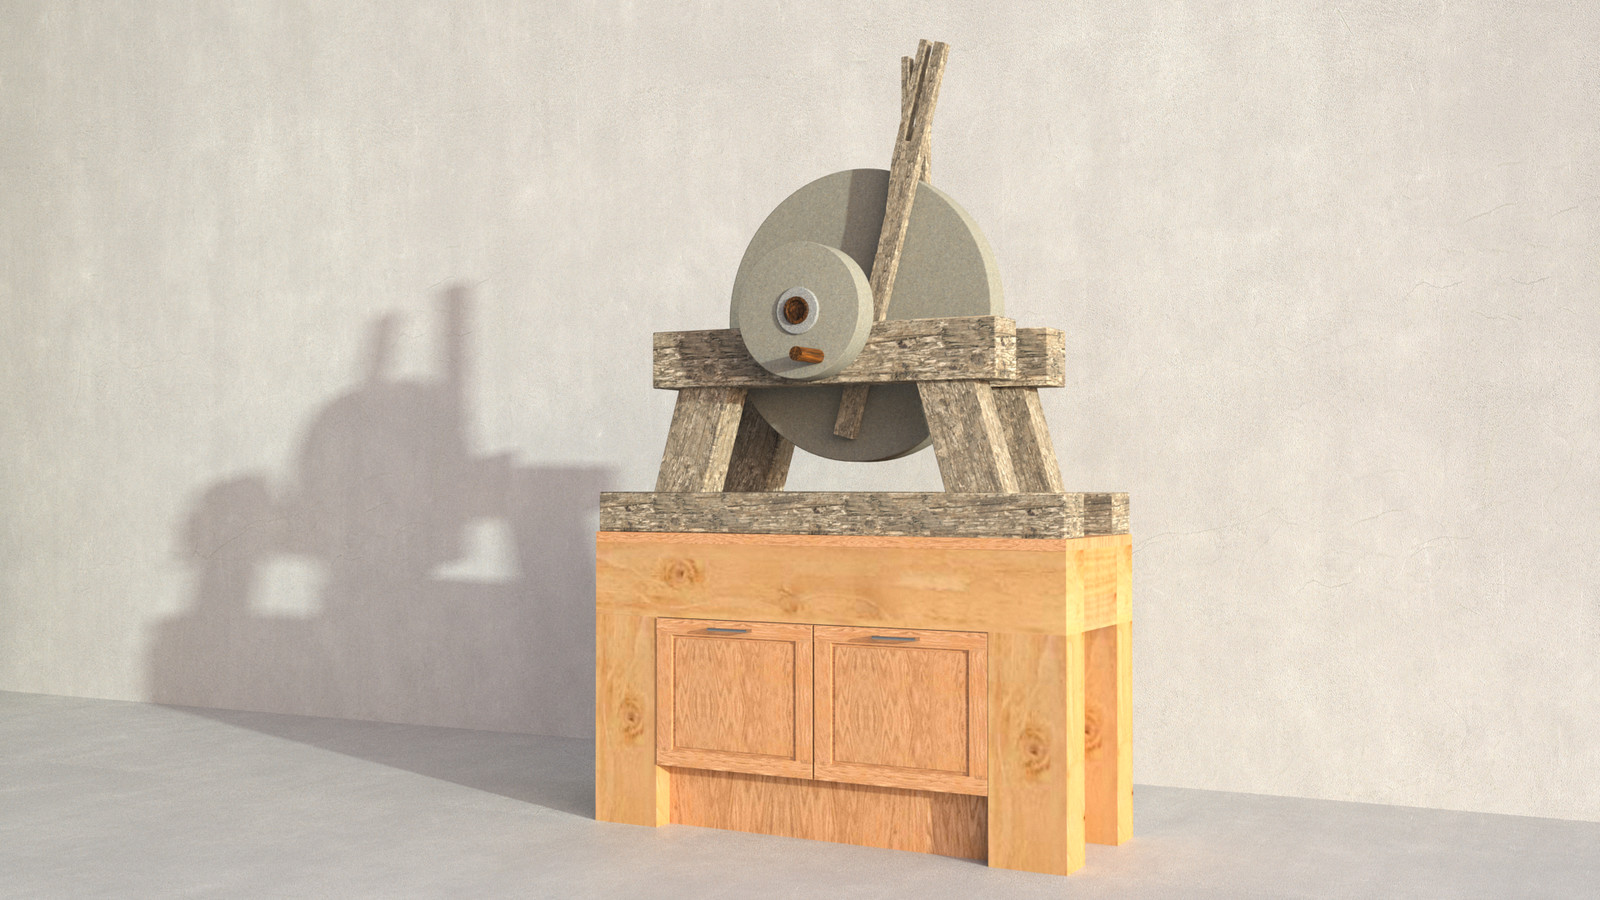 SketchUp + Thea Render  Rivendell Mill's Millstone 01